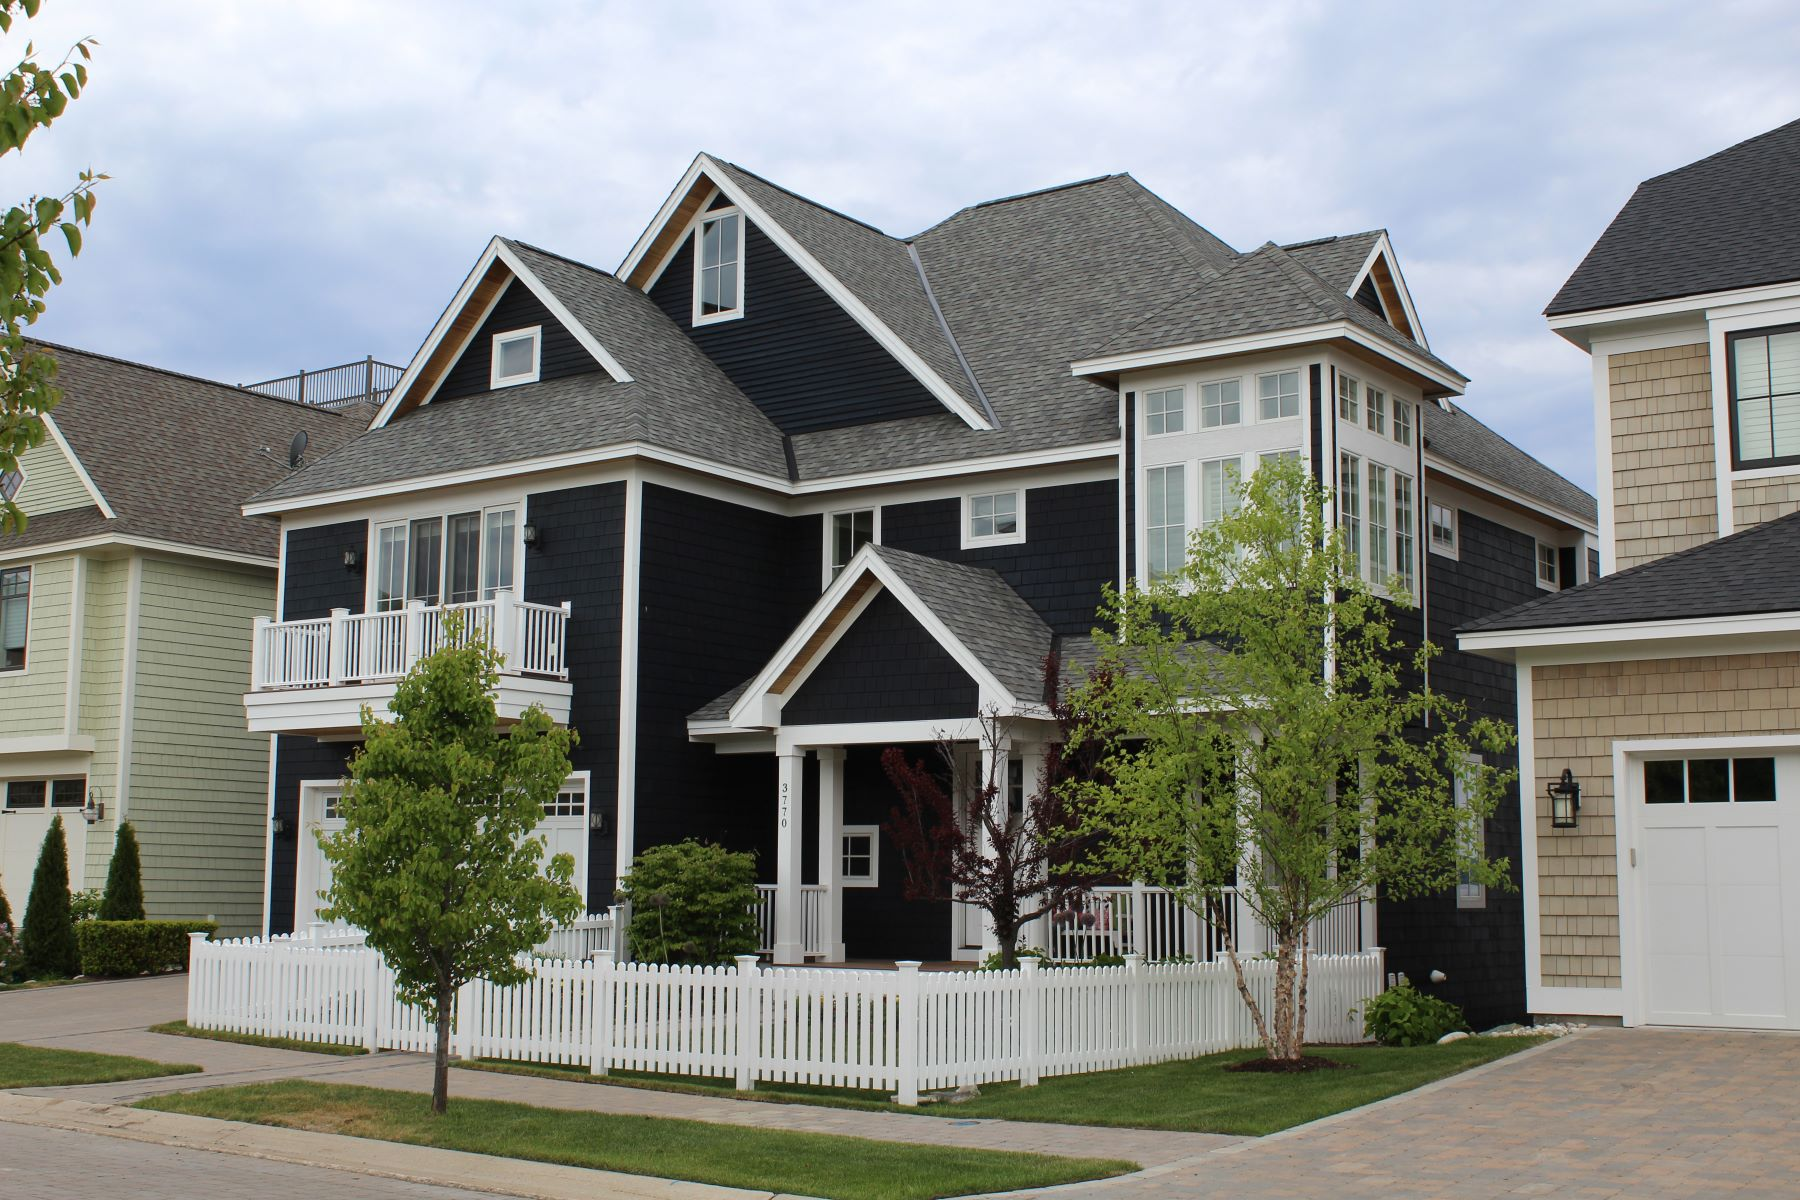 Single Family Homes for Active at Village Beach Unit 3 3770 N. Beach Street Bay Harbor, Michigan 49770 United States